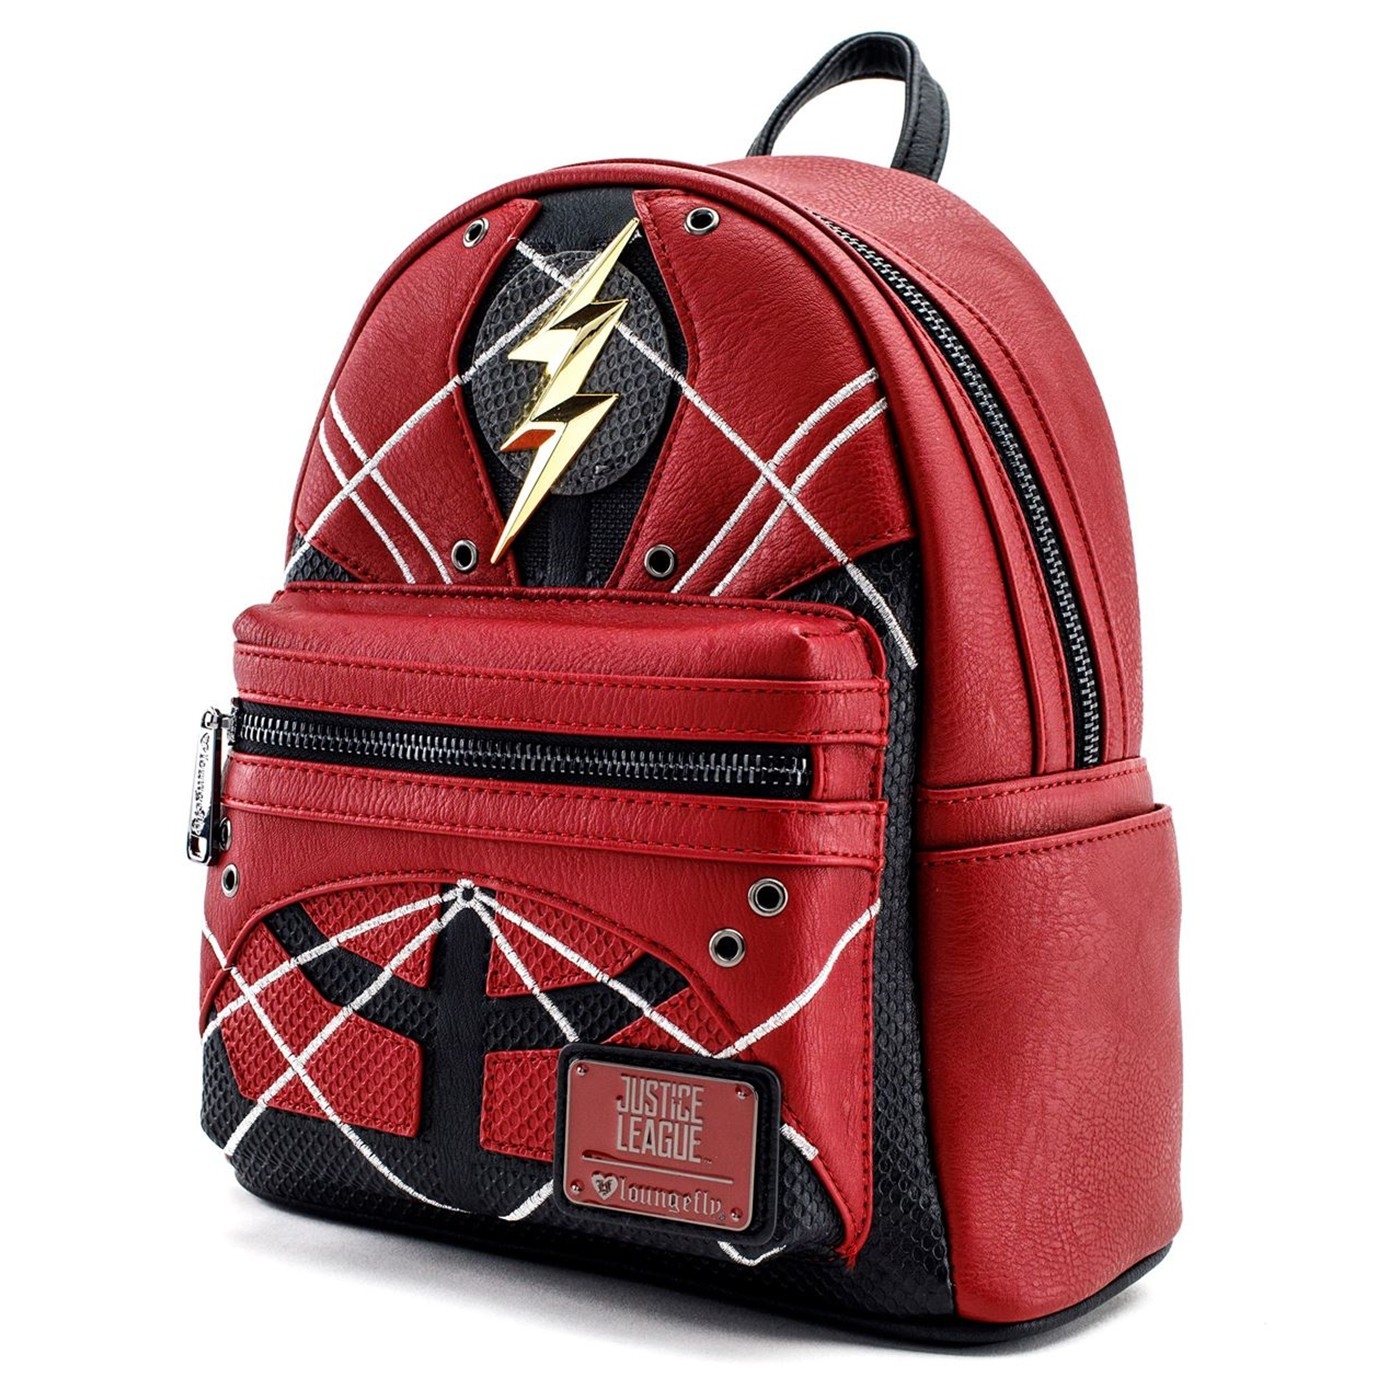 Flash Justice League Armor Mini Backpack